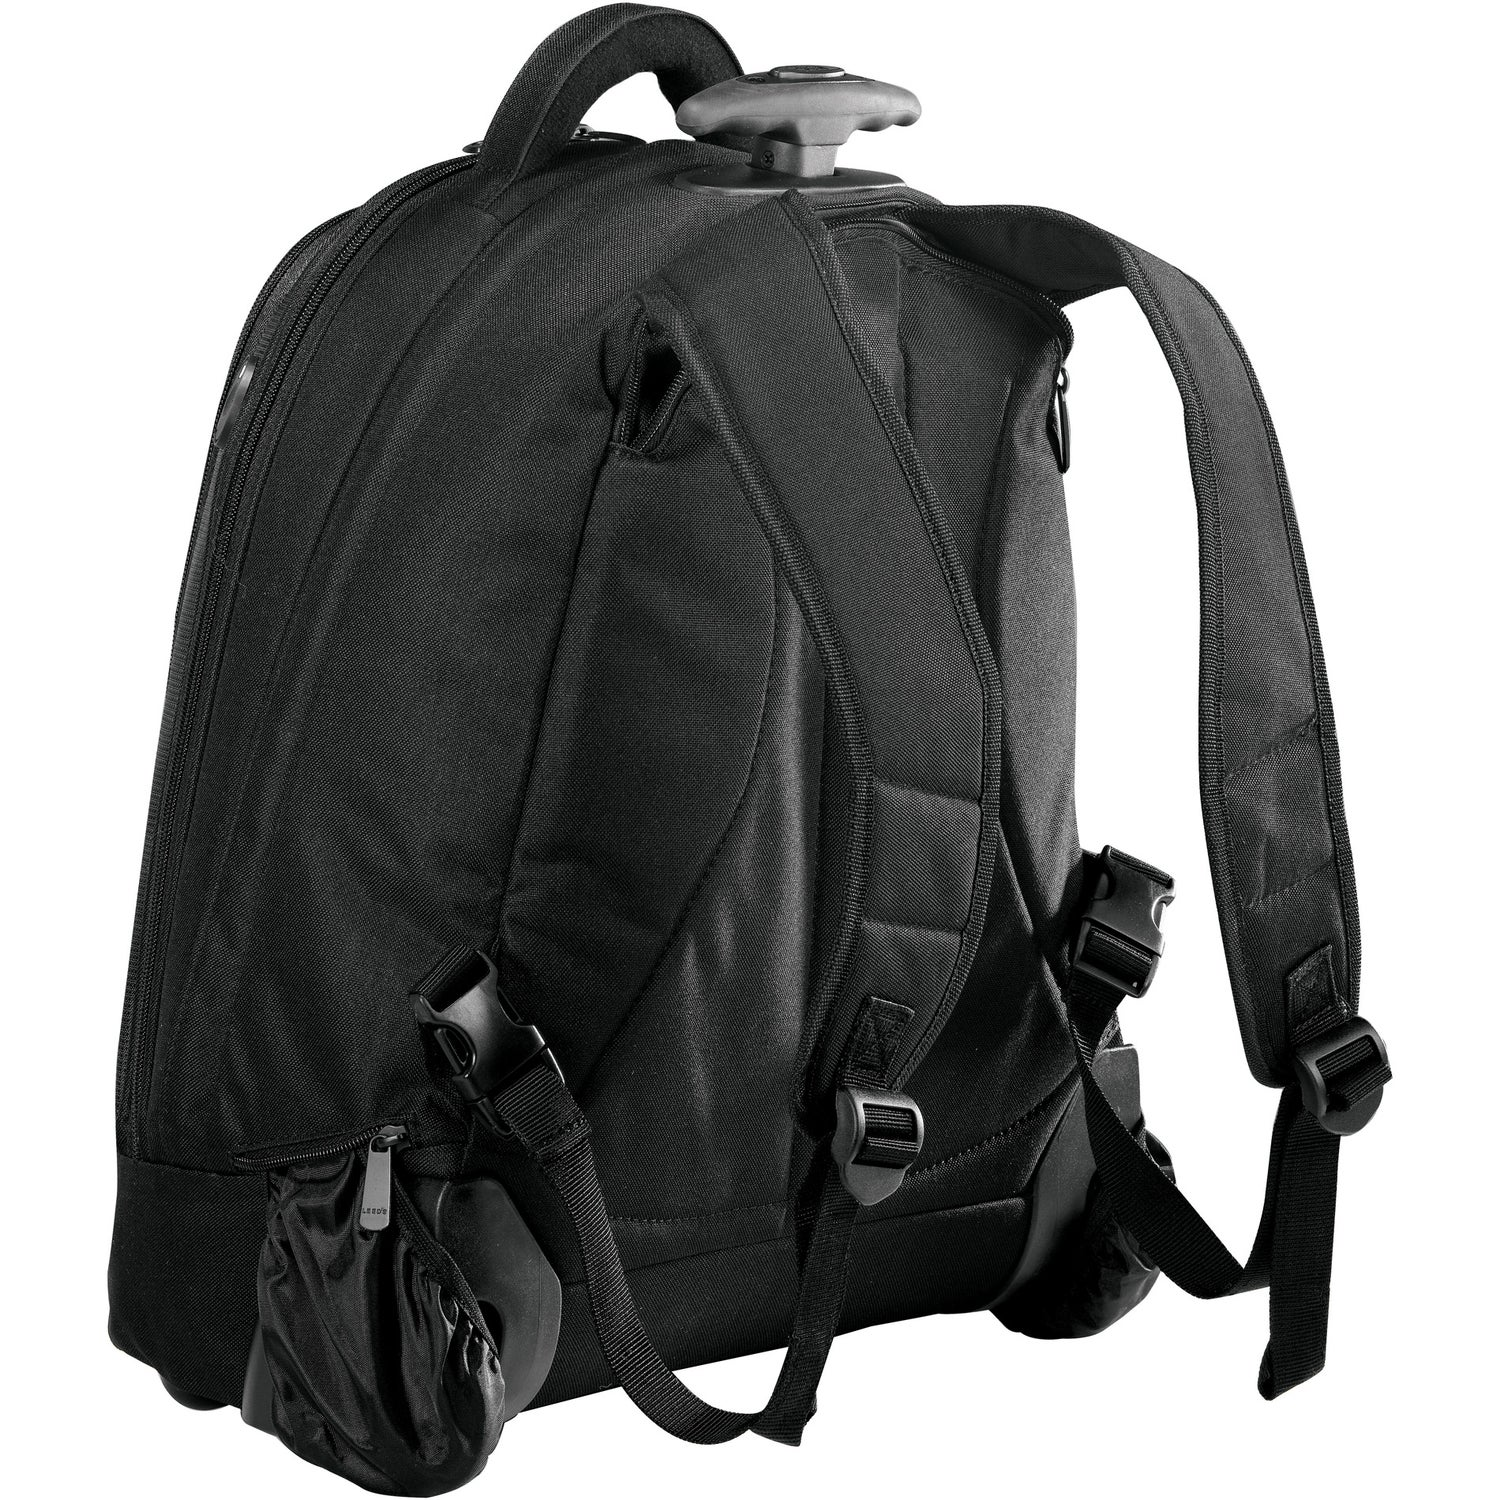 extra large rolling backpack Backpack Tools